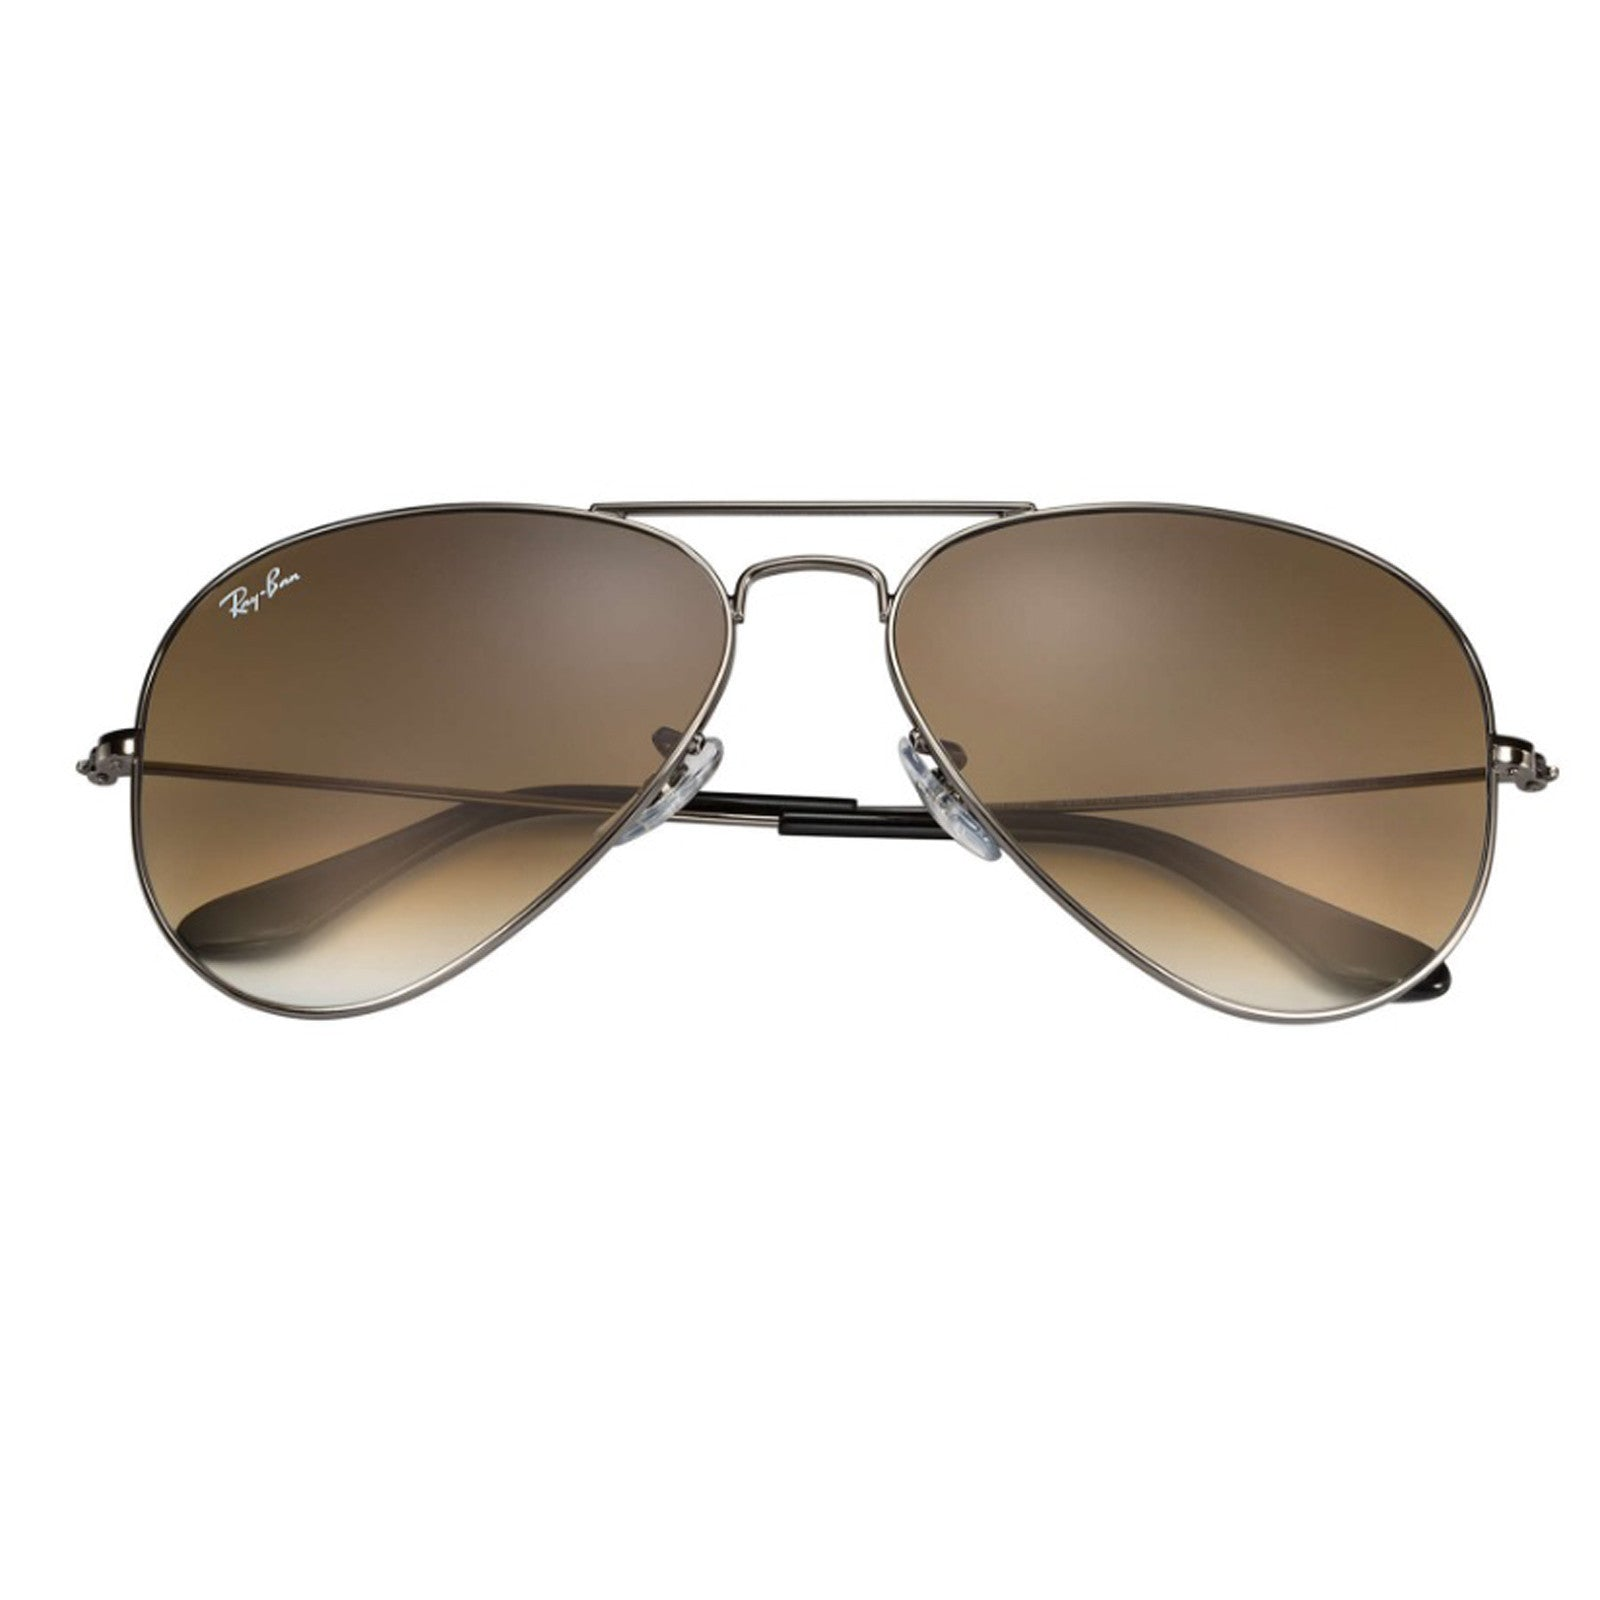 Funda Ray-ban Aviator RB3025 004/51